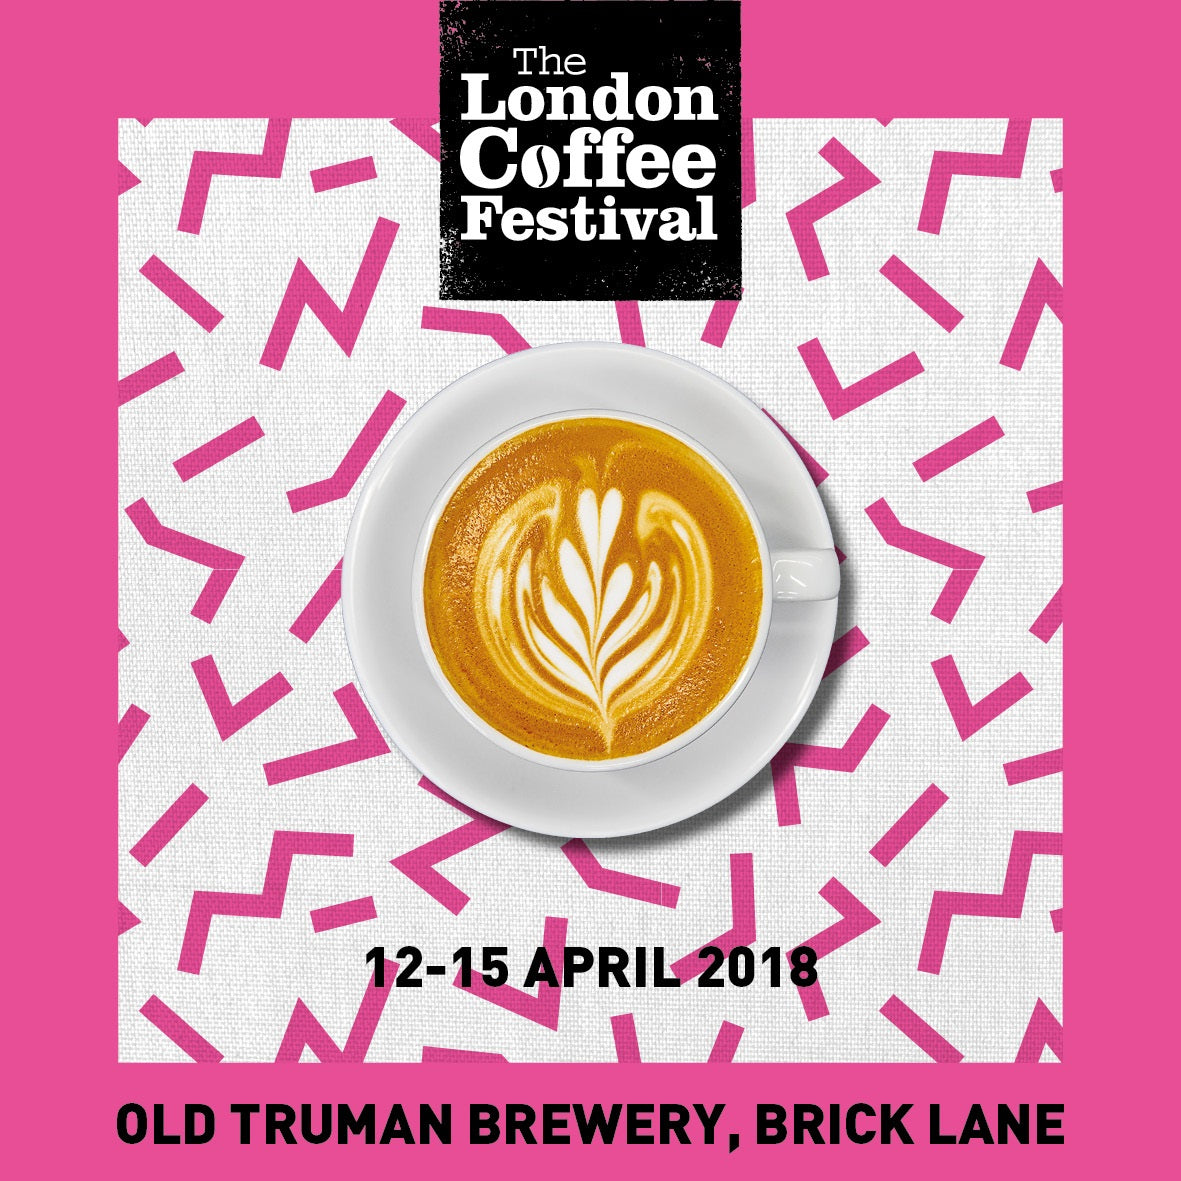 We will be at the London Coffee Festival again